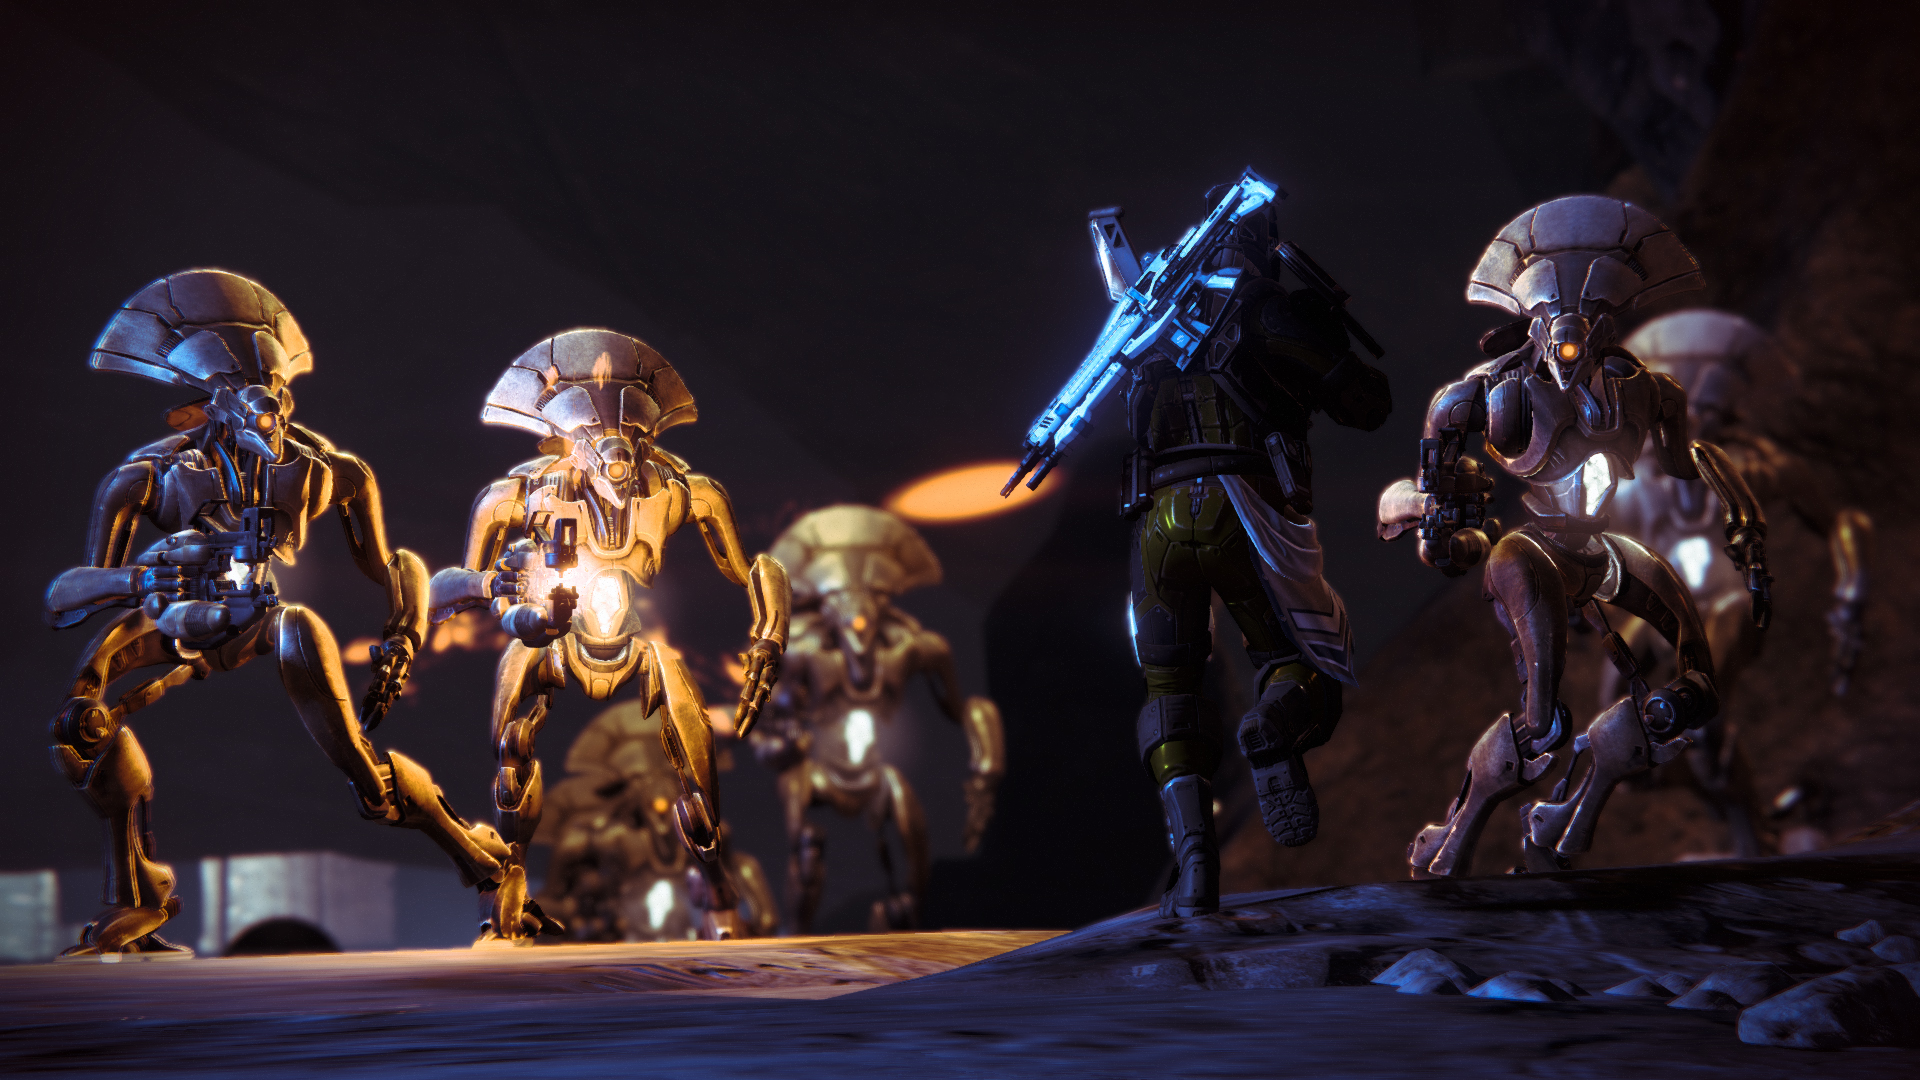 Destiny Game Characters Full HD Wallpaper